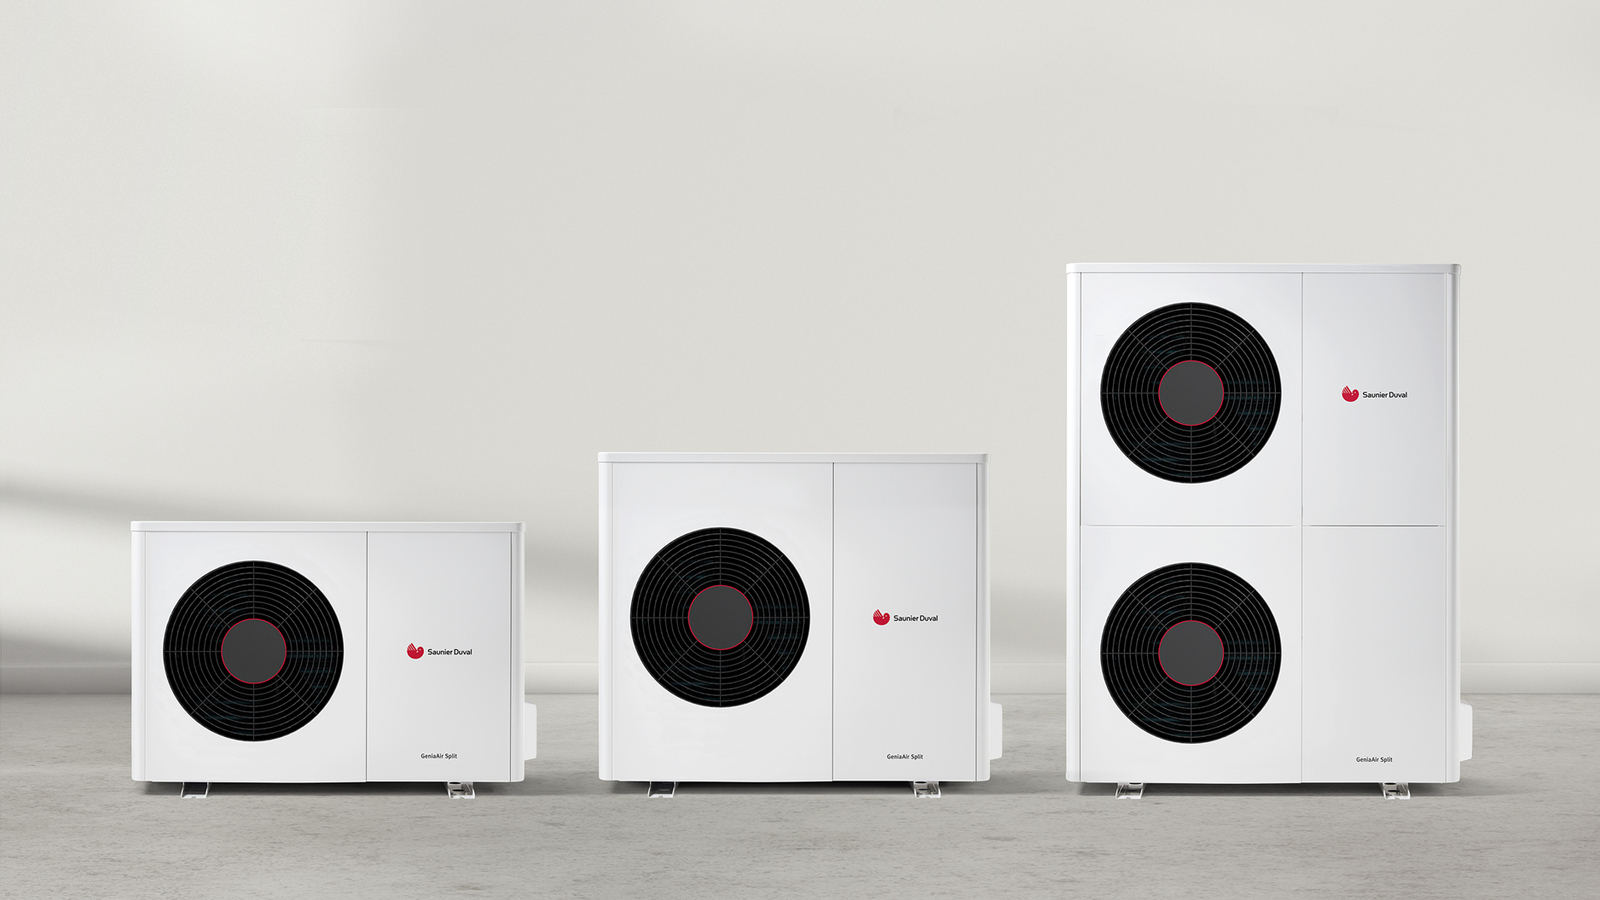 //www.bulex.be/media-master/global-media/sdbg/communication-portfolio/heat-pump-b2c-content/awhp-genia-air-range-split-product-beauty-1169790-format-16-9@1600@desktop.jpg